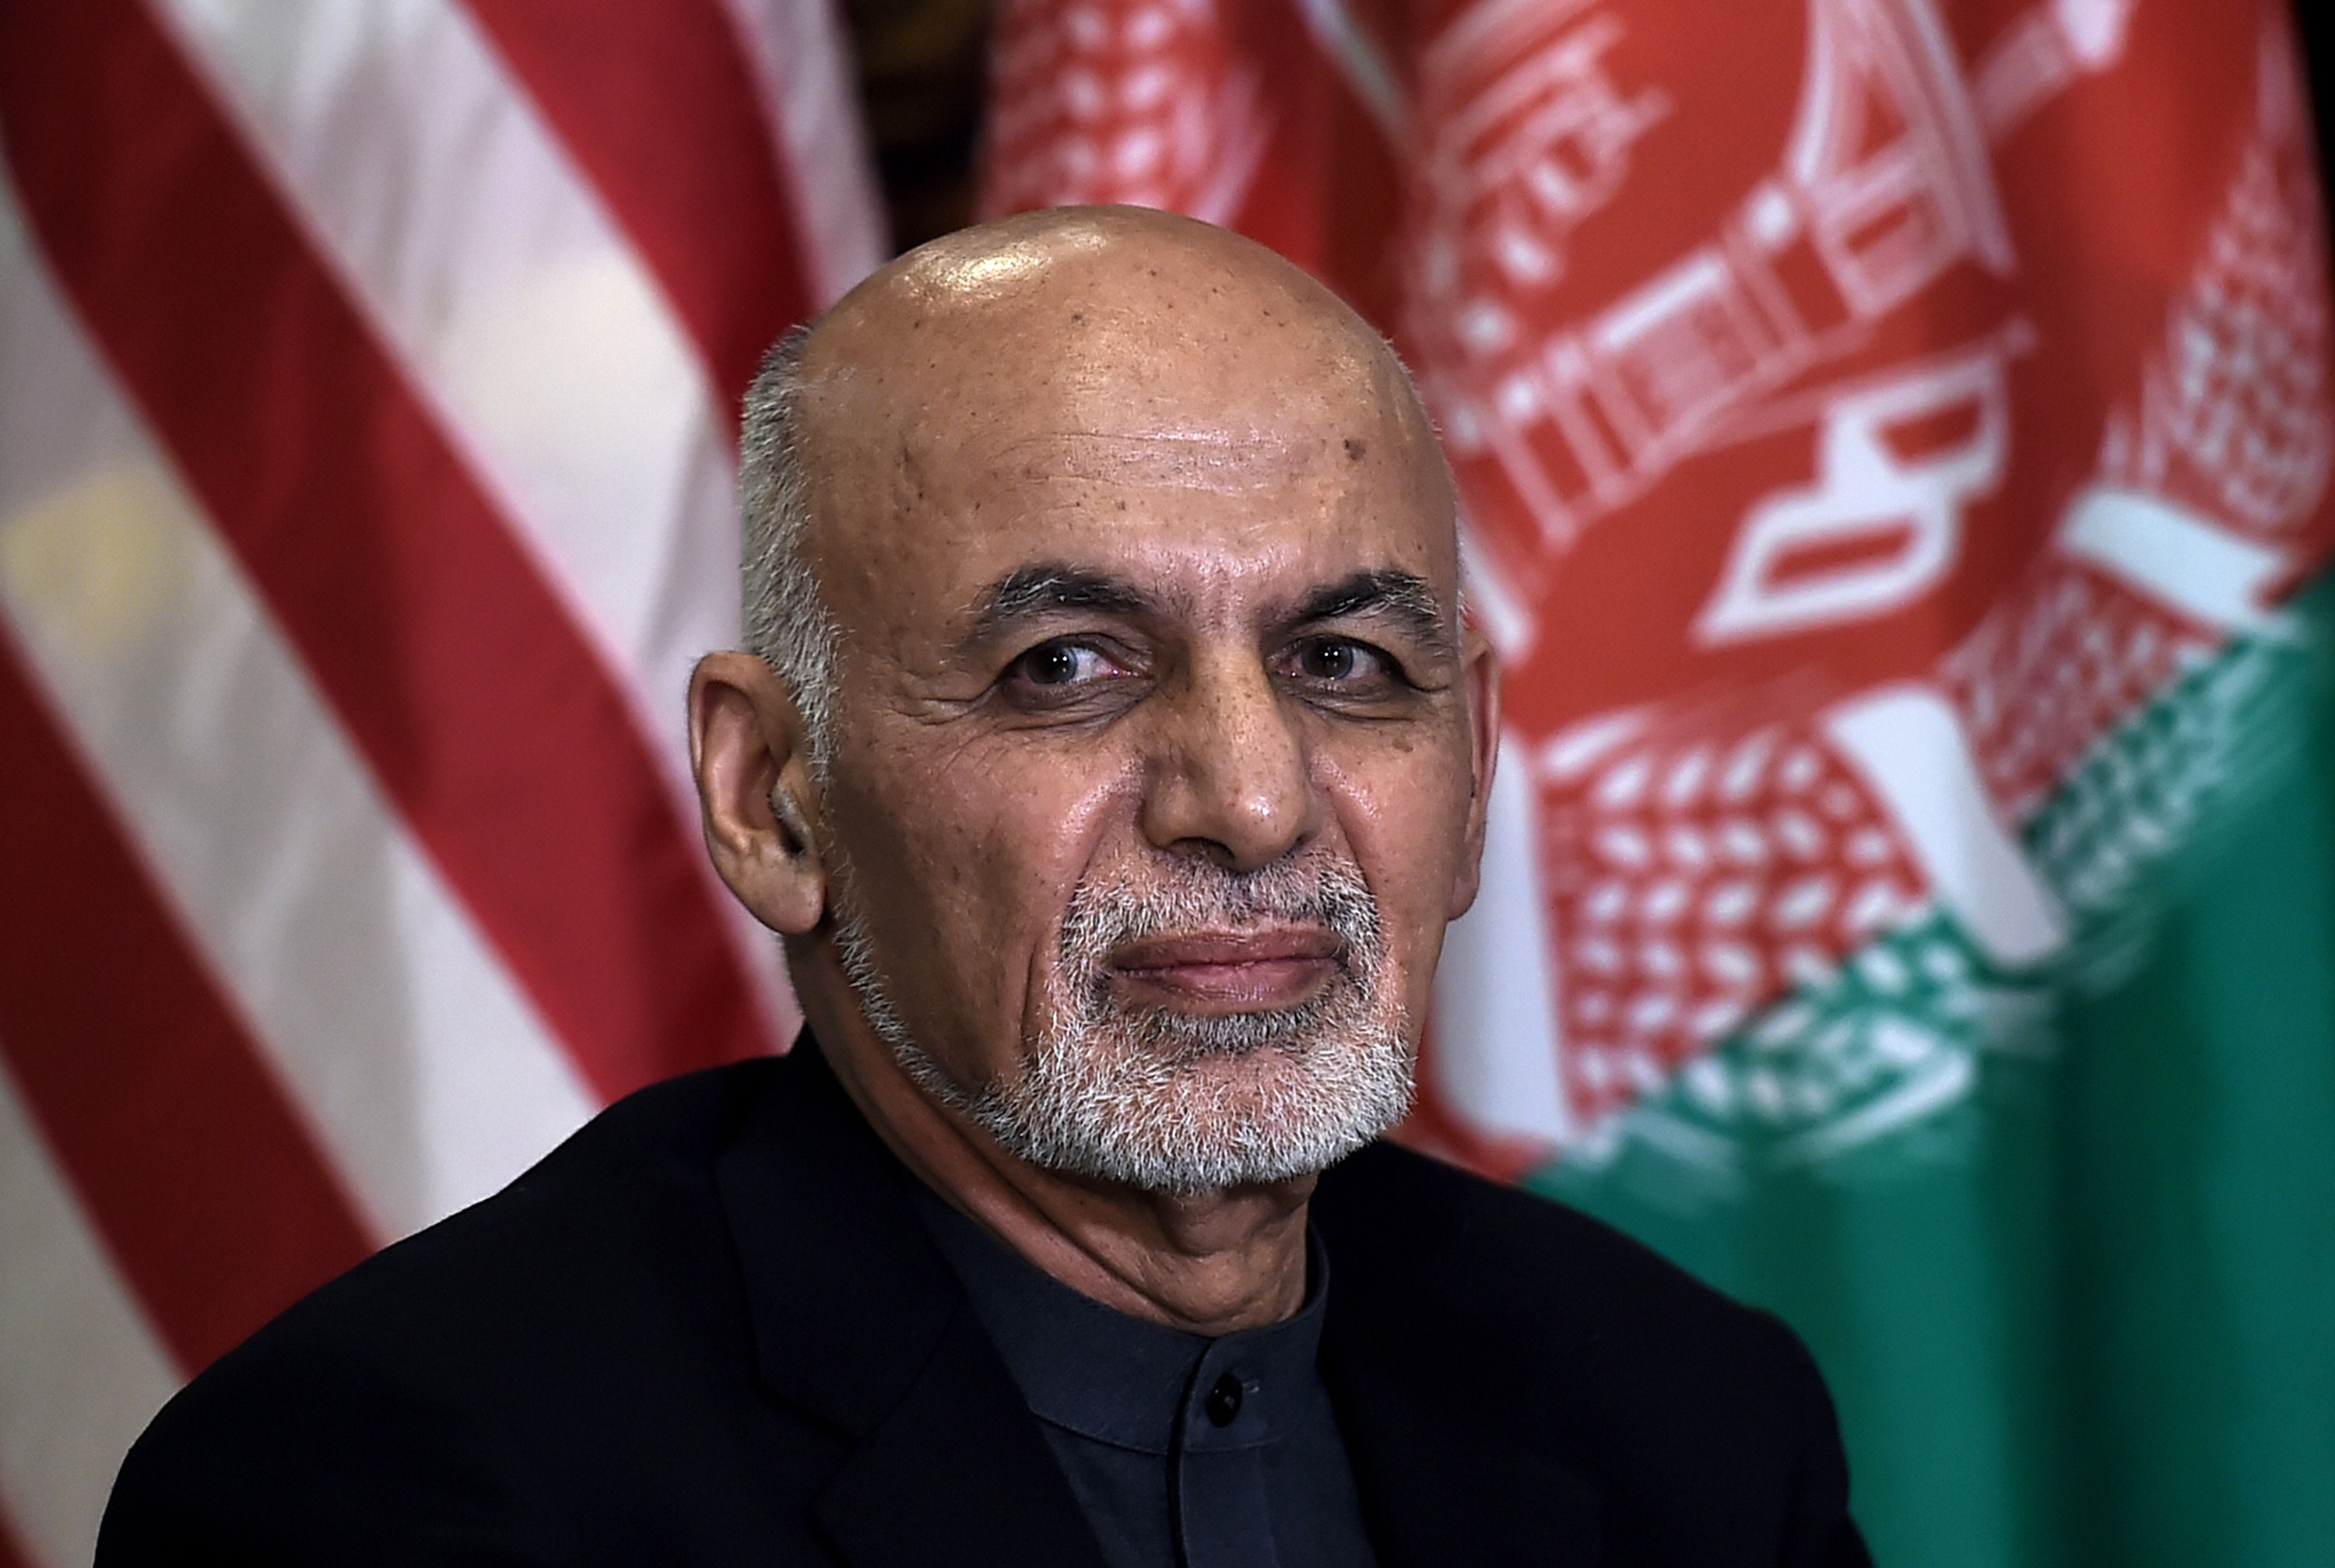 Afghanistan President Ashraf Ghani during a meeting with US President Donald Trump at Bagram Airfield on November 28, 2019.